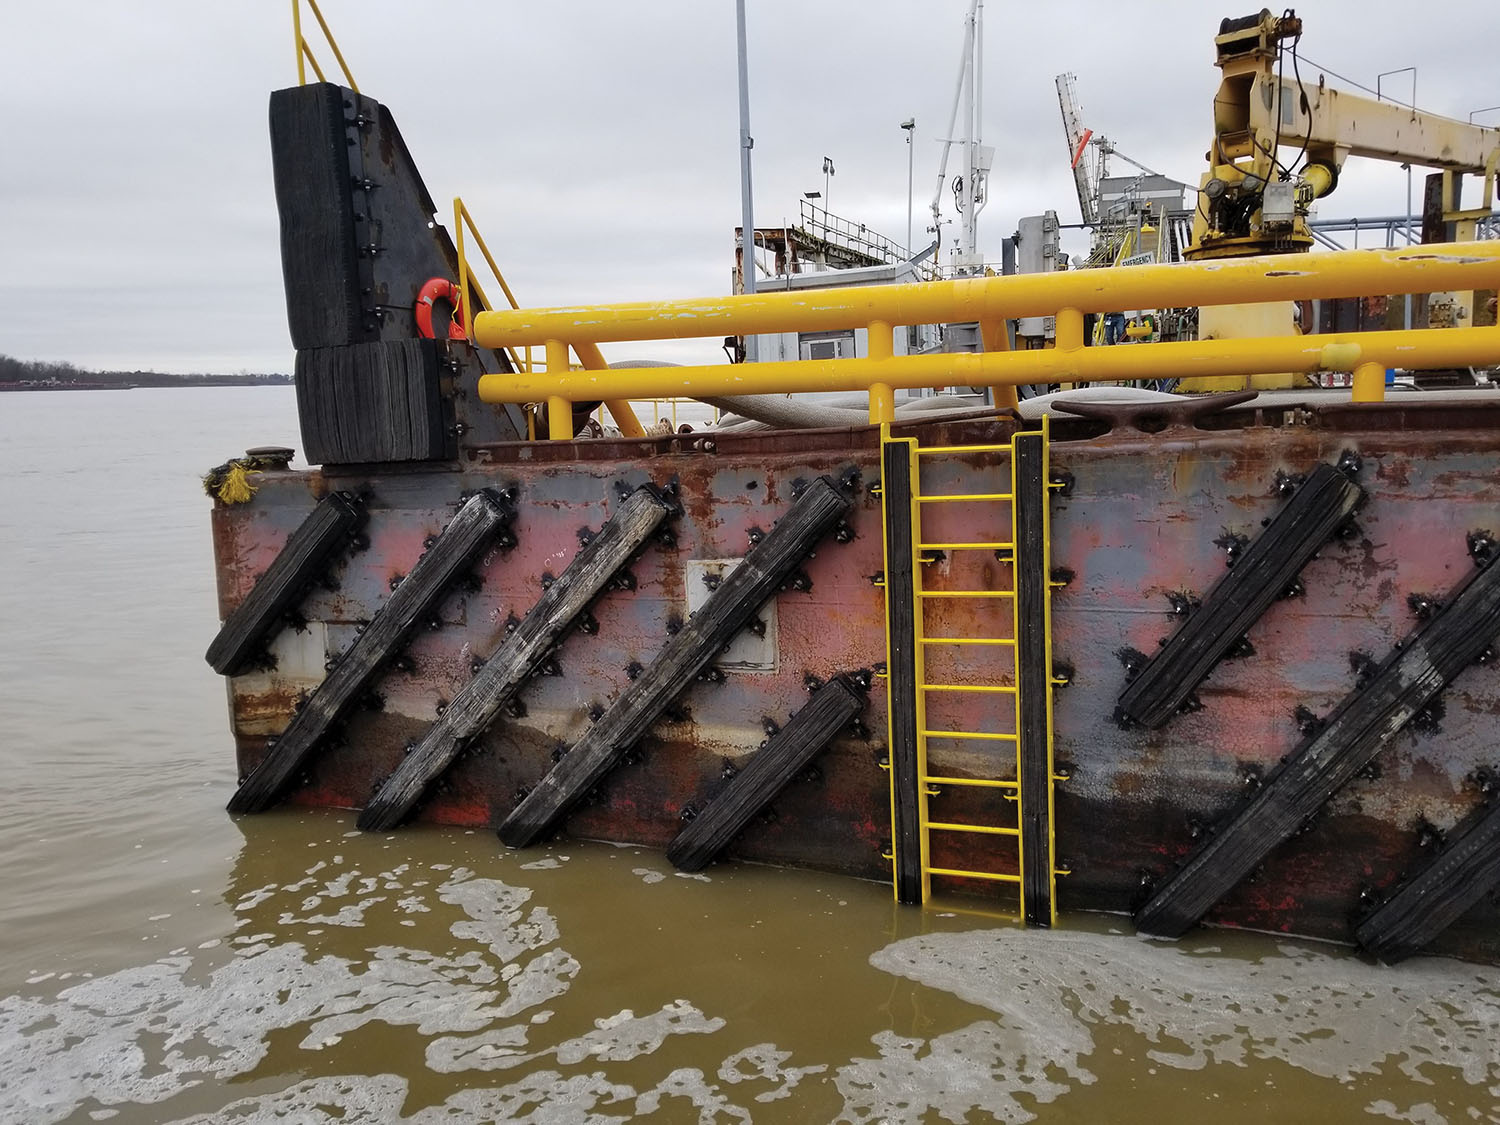 Bolt-on integrated ladder installed on barge dock. (Photo courtesy of Schuyler Maritime)